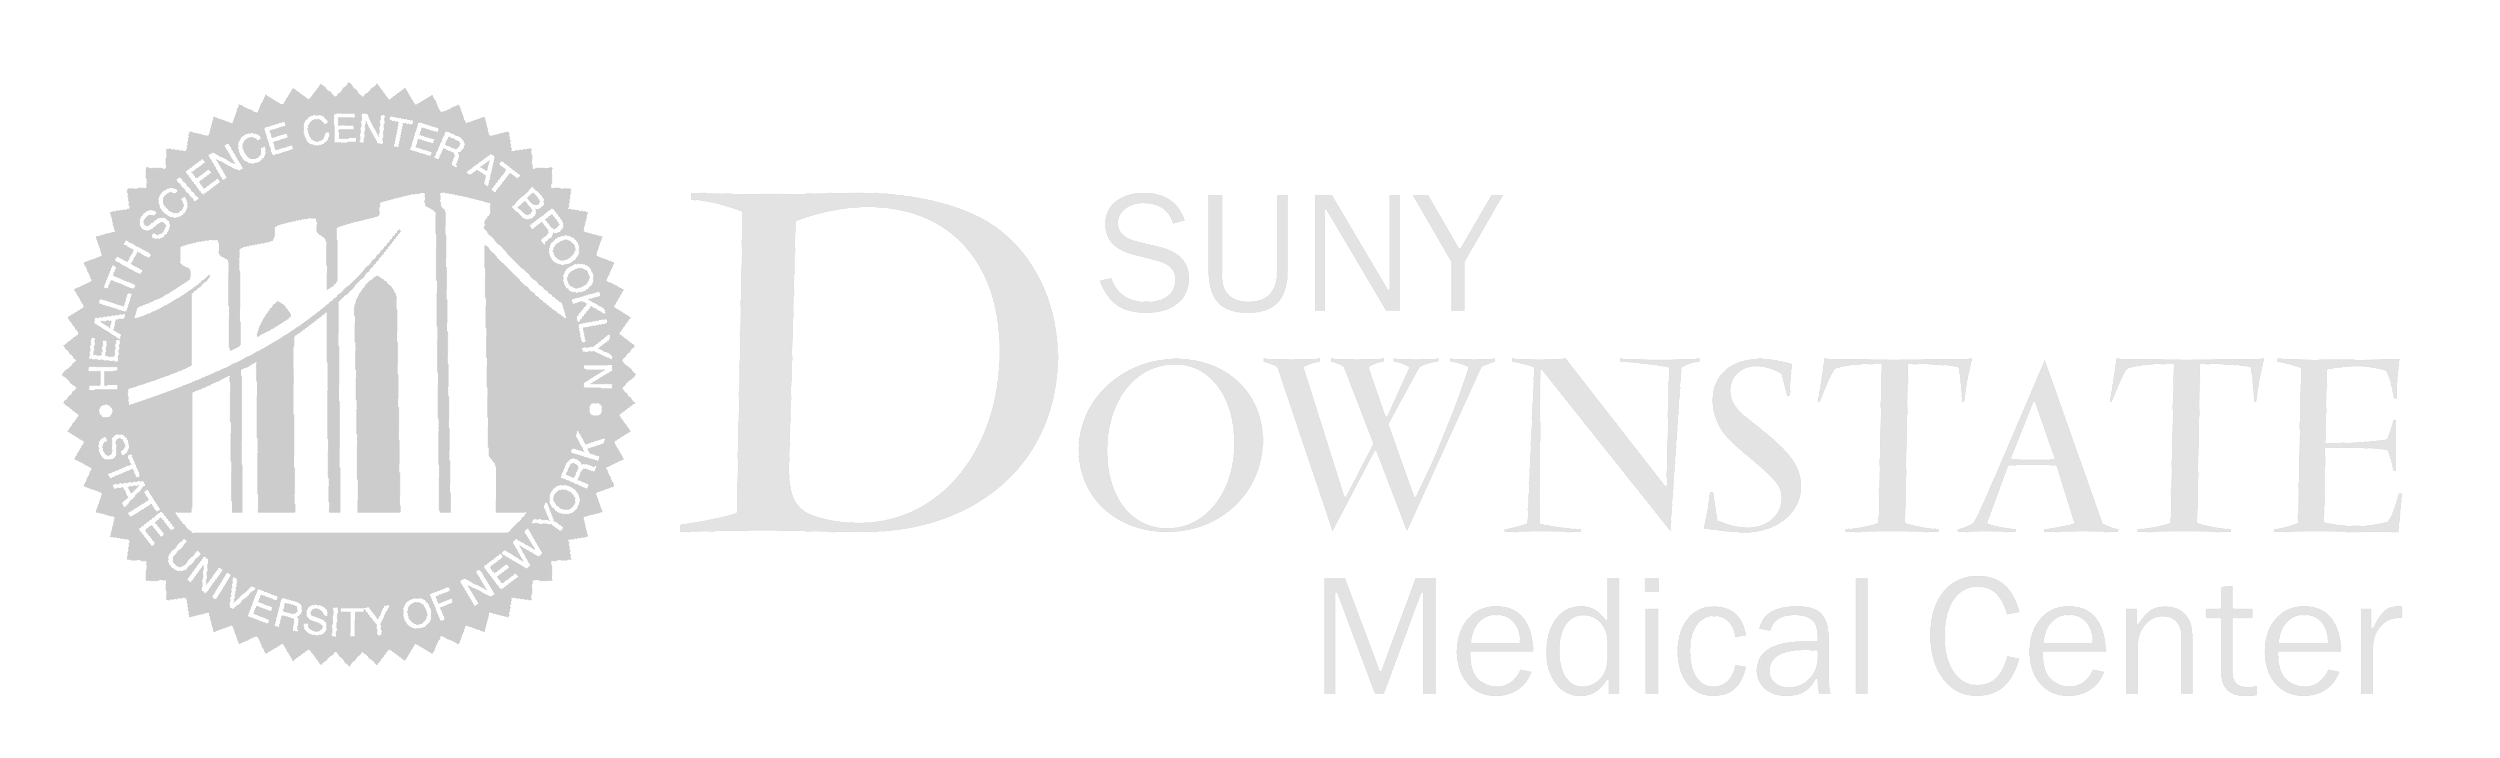 SUNY Downstate Medical Center.png